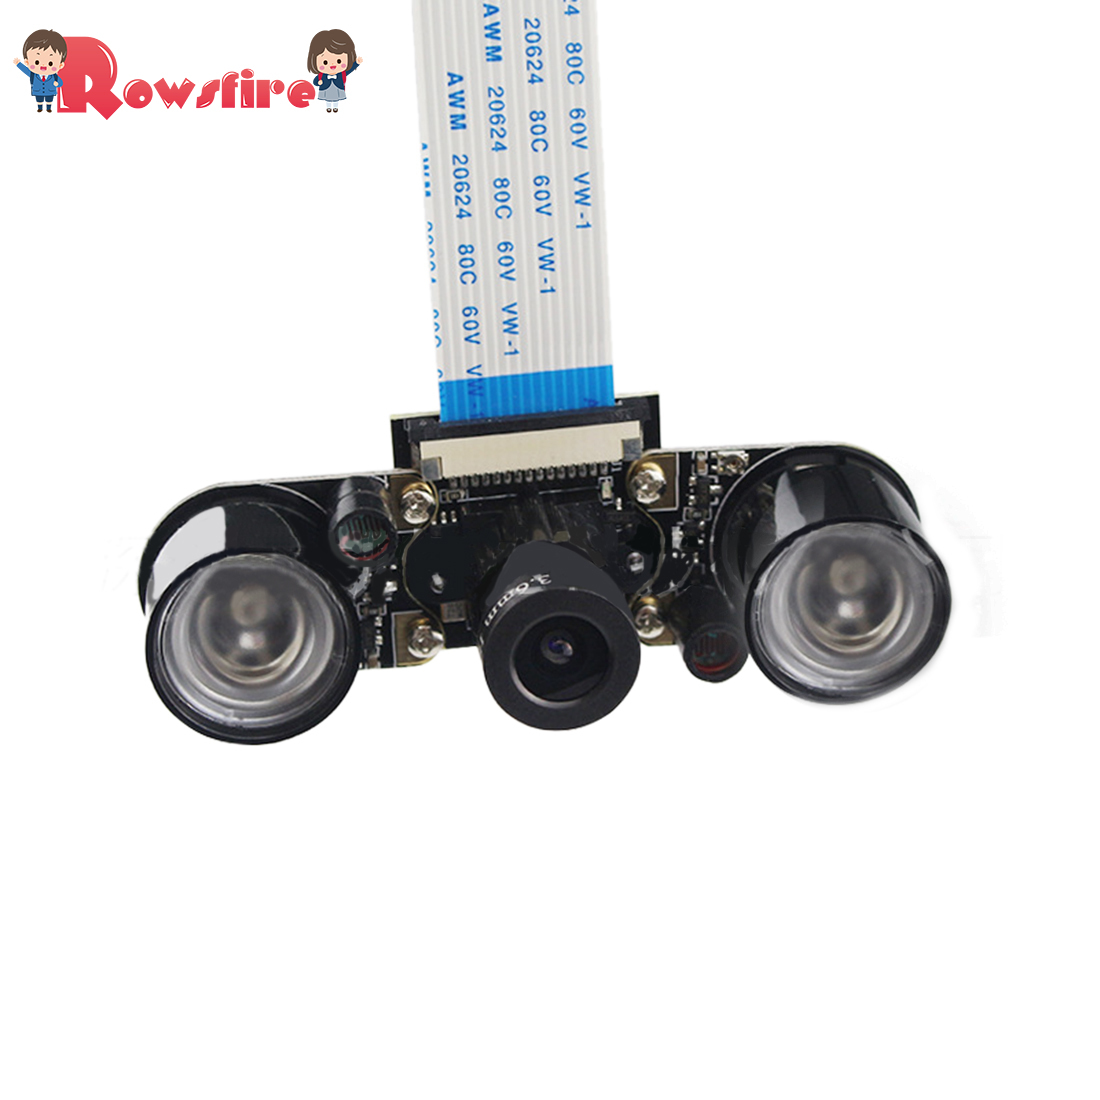 5MP Pixel Infrared Night Vision Camera With Infrared Fill Light For Raspberry Pi 3B+/3B/2B